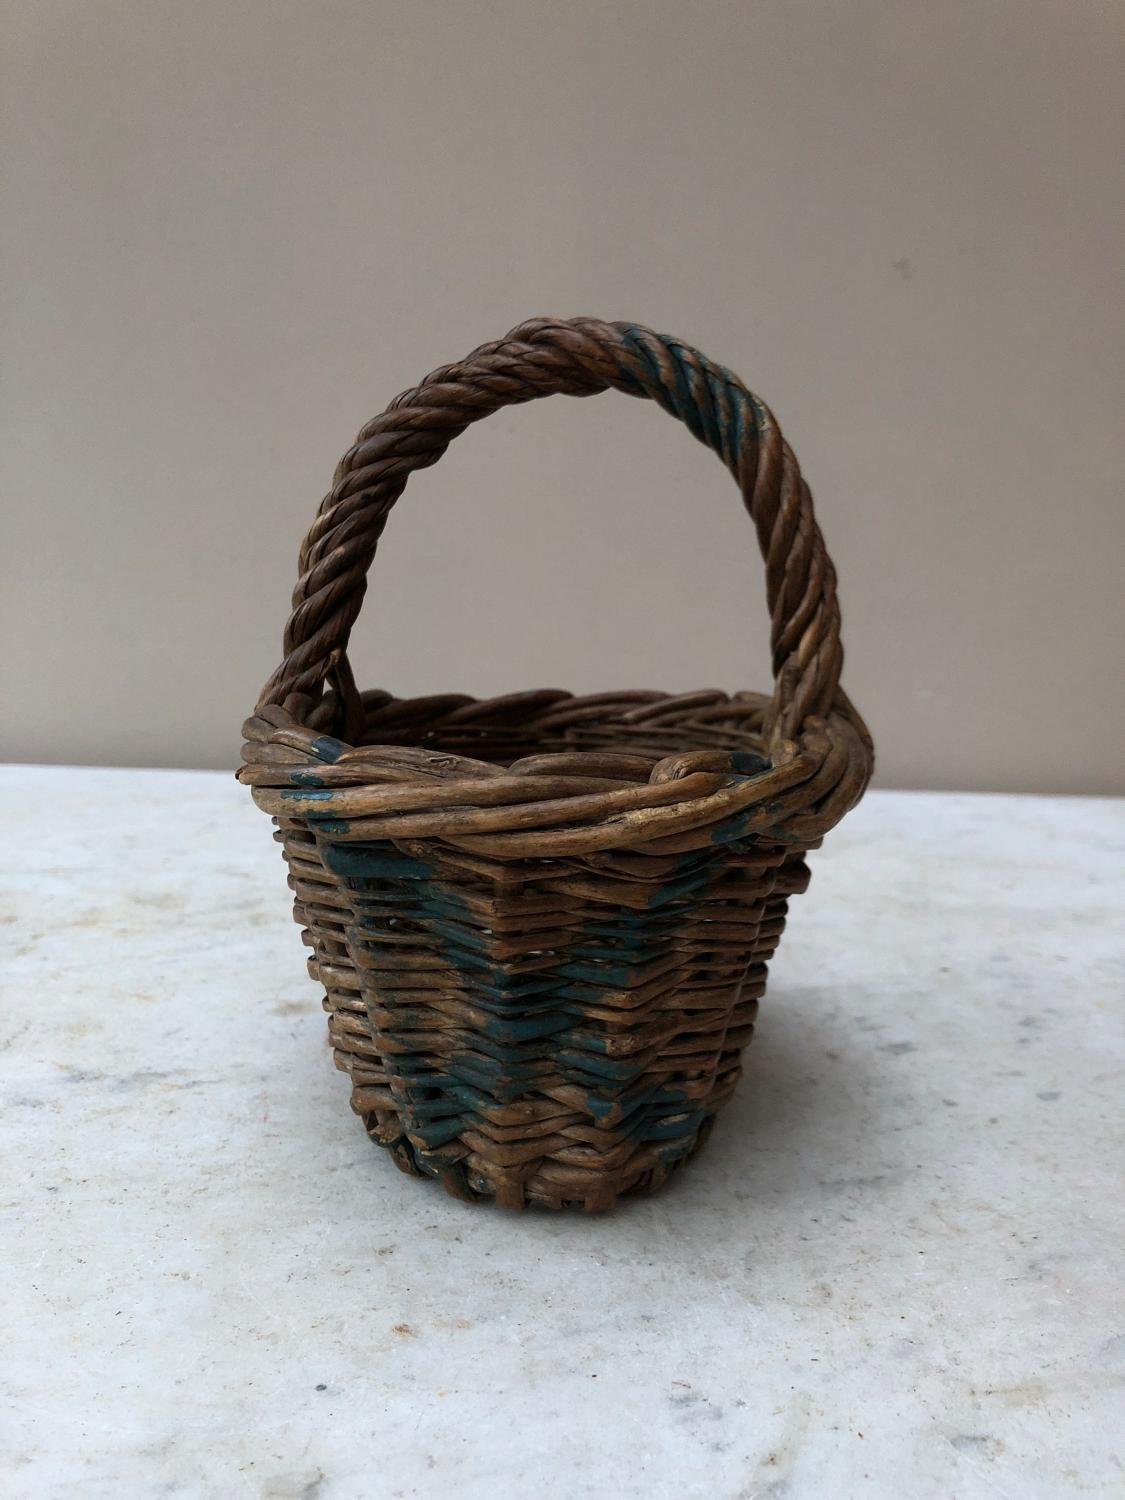 Late Victorian Super Cute Berry Basket - Great for Eggs or Lemons